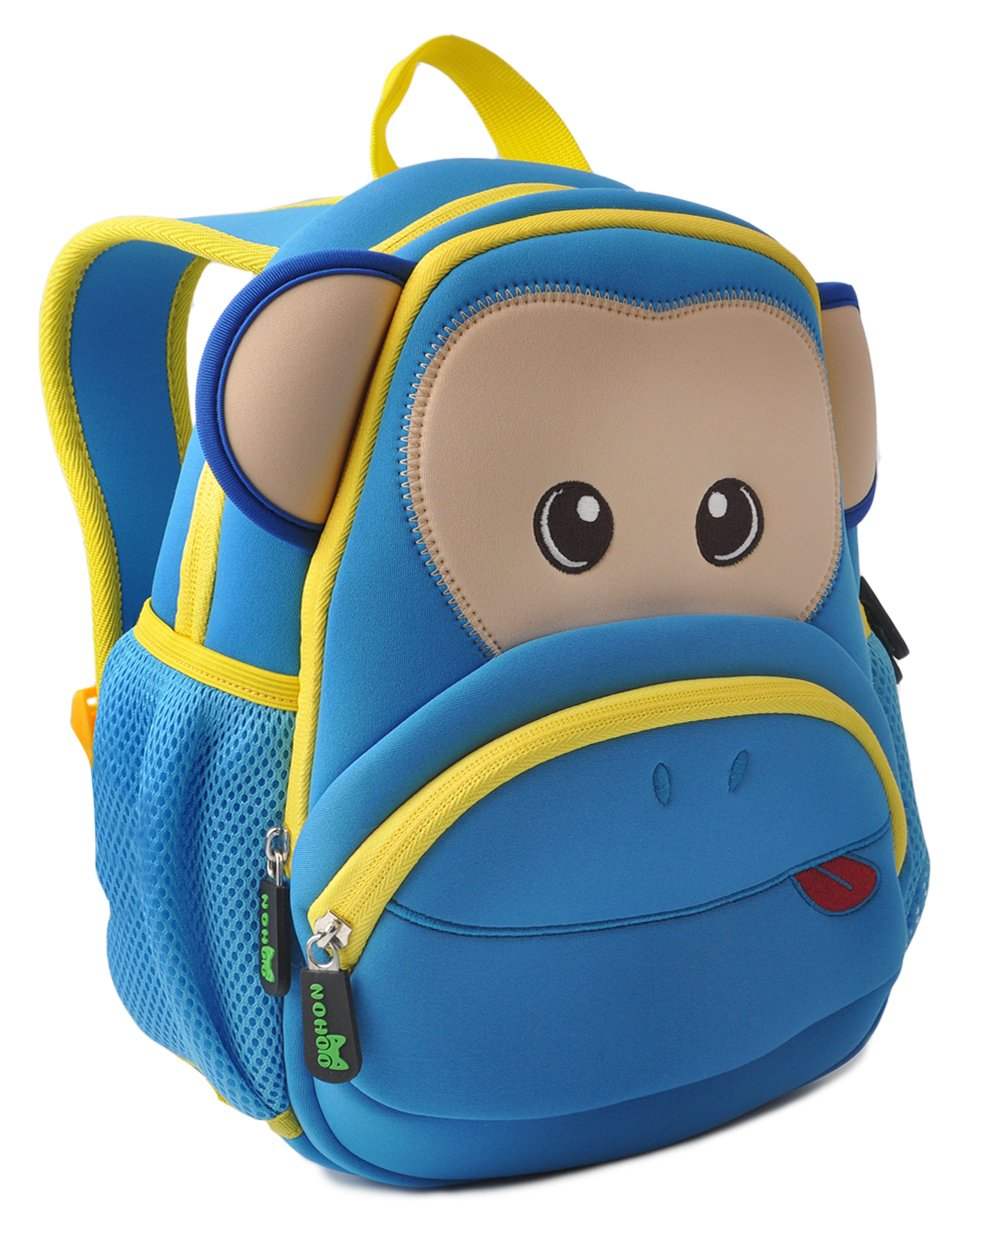 c3831a0f2e03 F40C4TMP Kids Backpack Toddler Backpack Kindergarten Pre-school Boys Girls  Bag with Shoulder Bag...